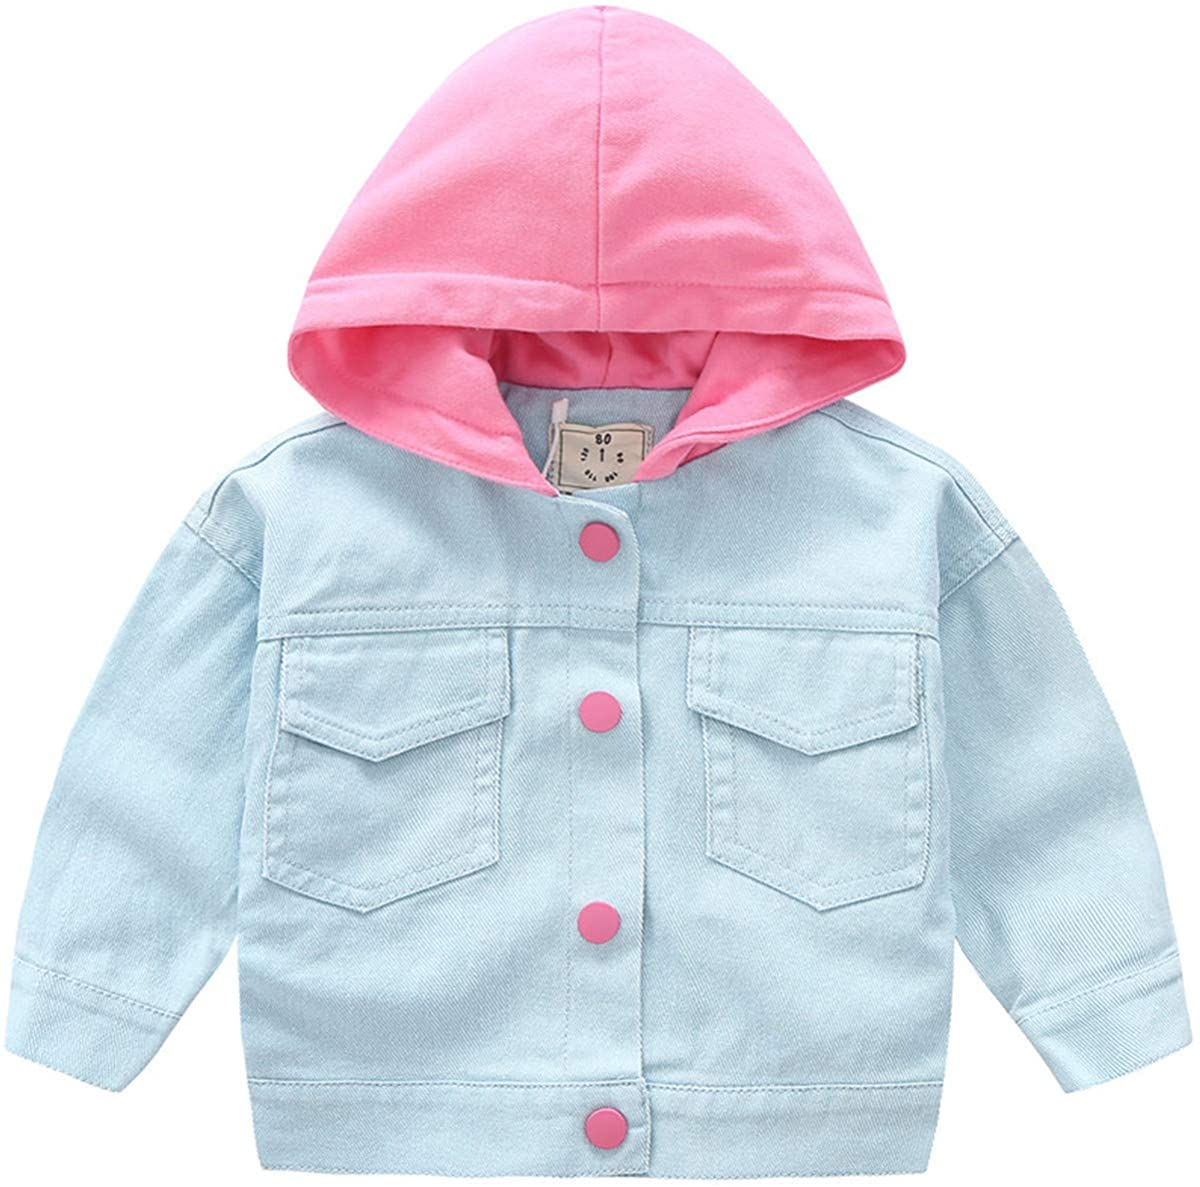 REWANGOING Baby Toddler Little Kids Girls Sweety Candy Color Letter Print Hoodie Cotton Jeans Jacket Outwear